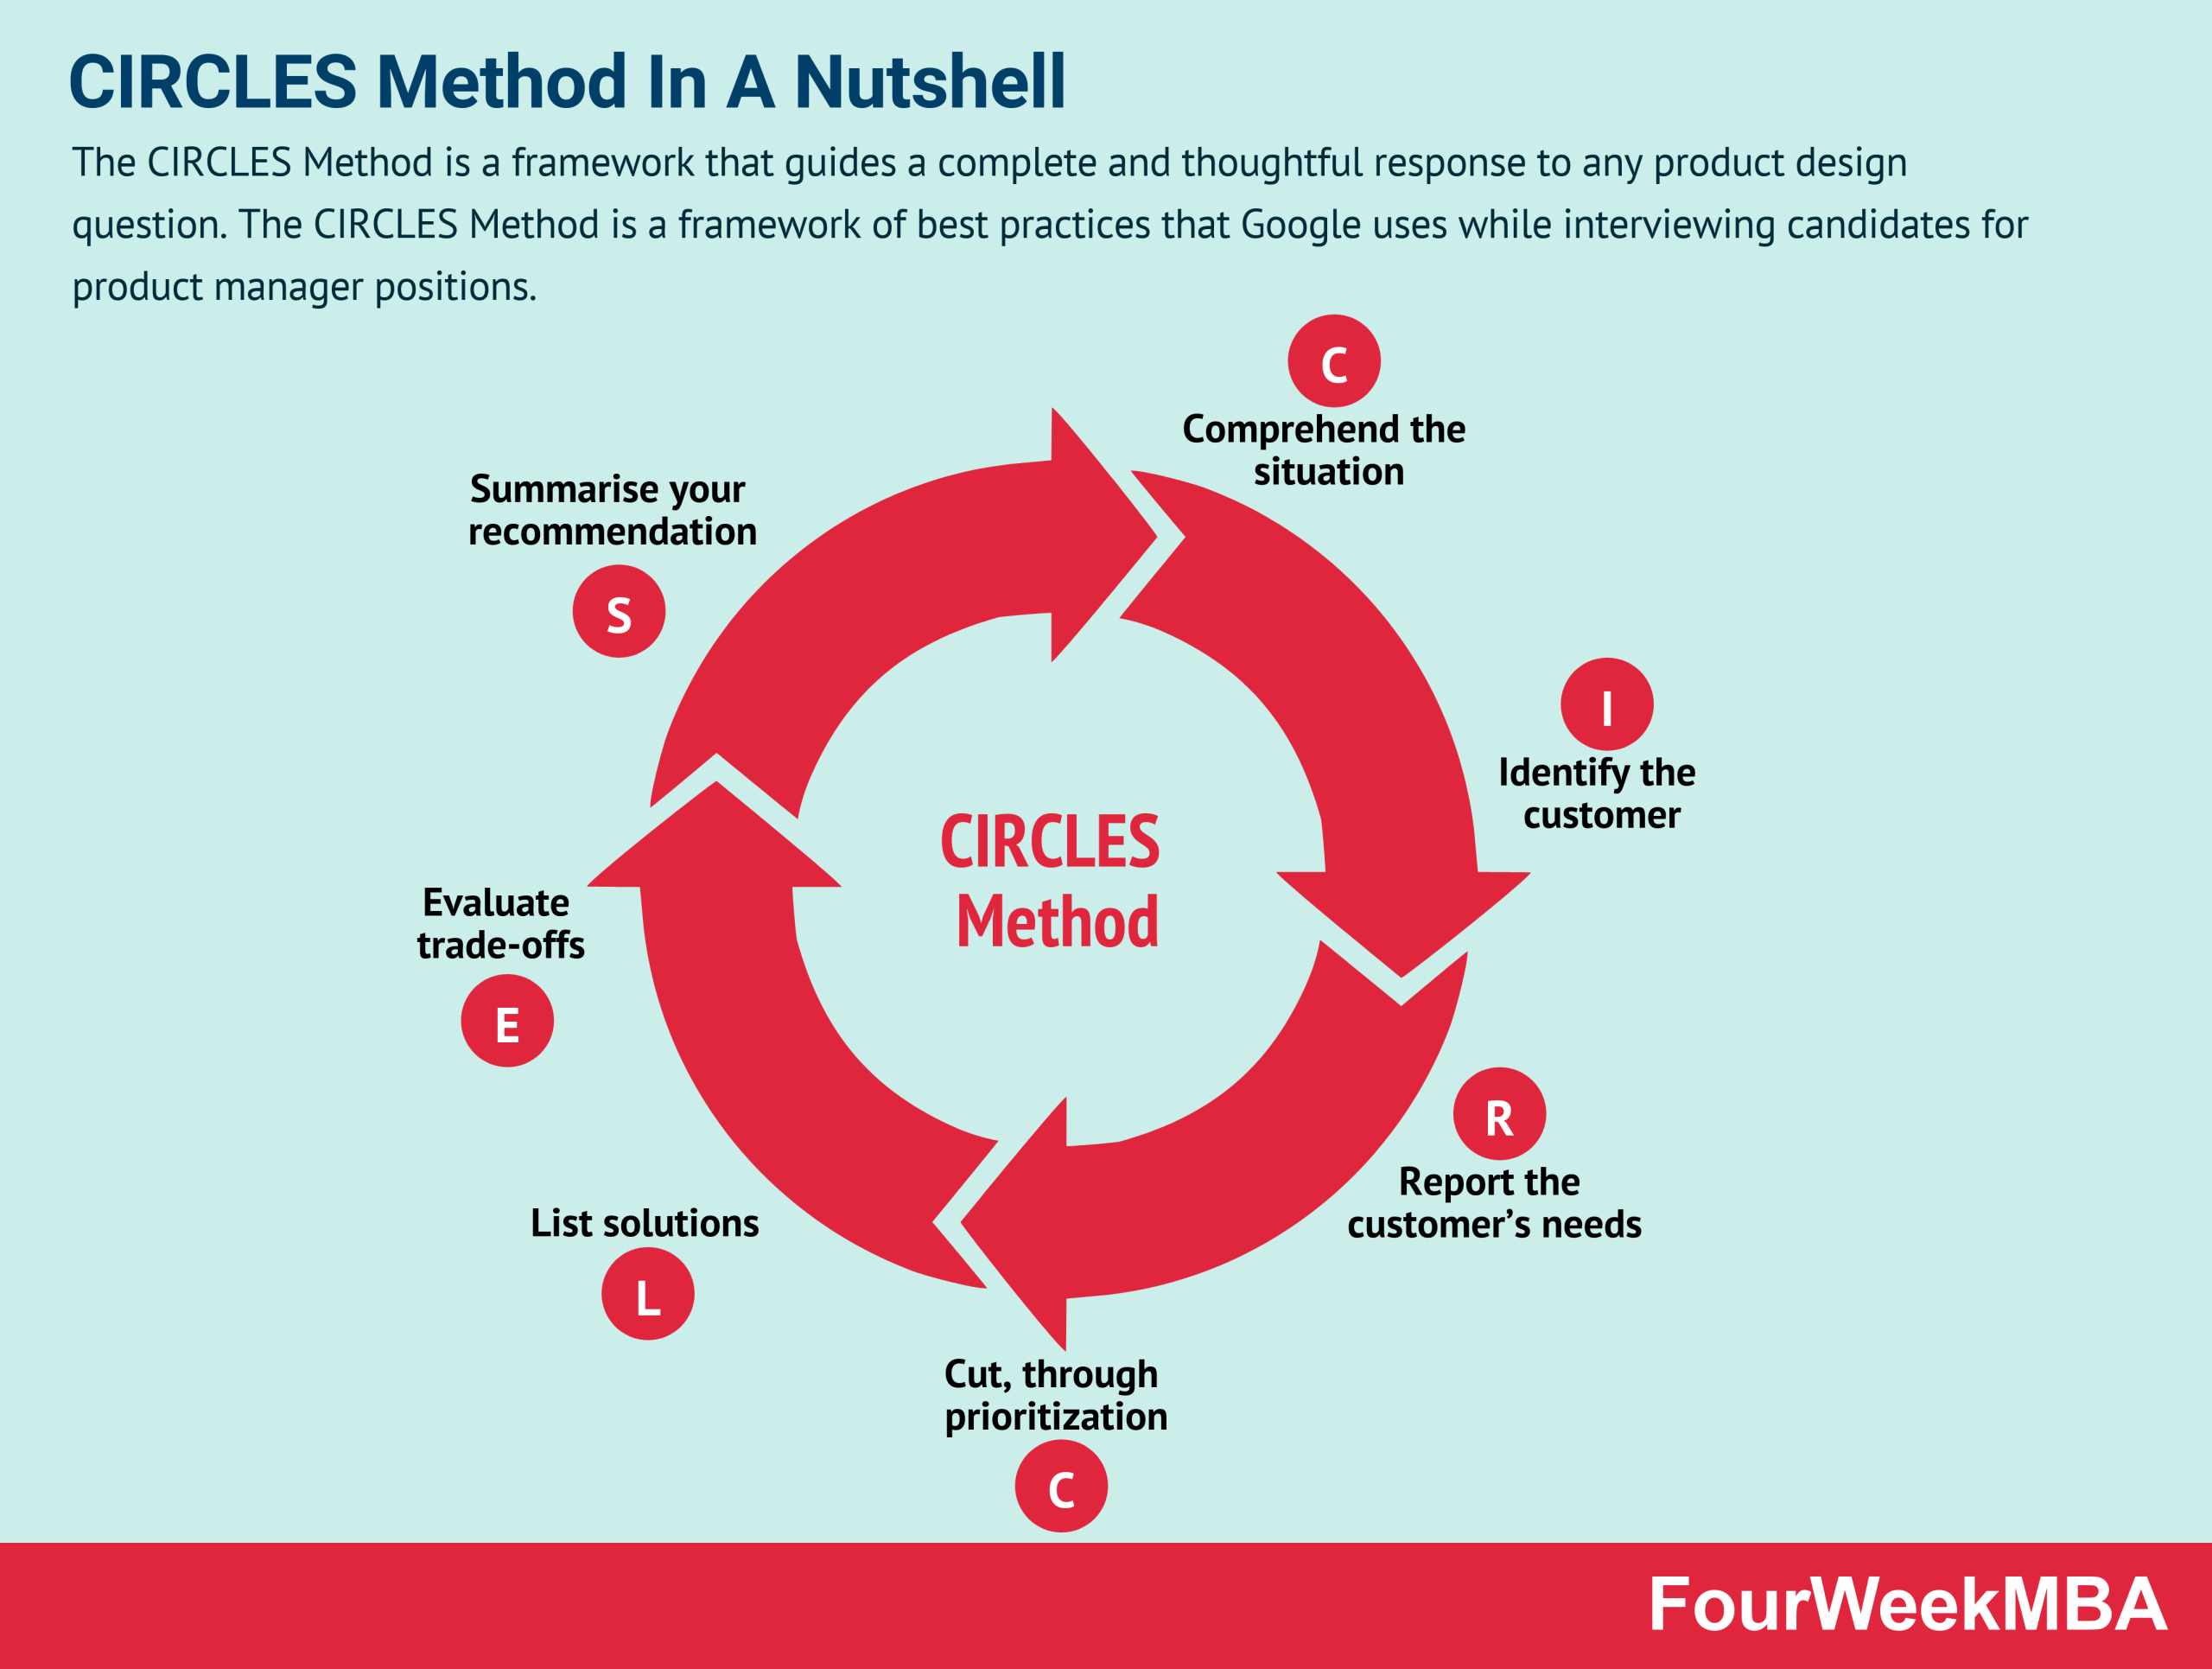 CIRCLES Method And How To Use It To Get Hired